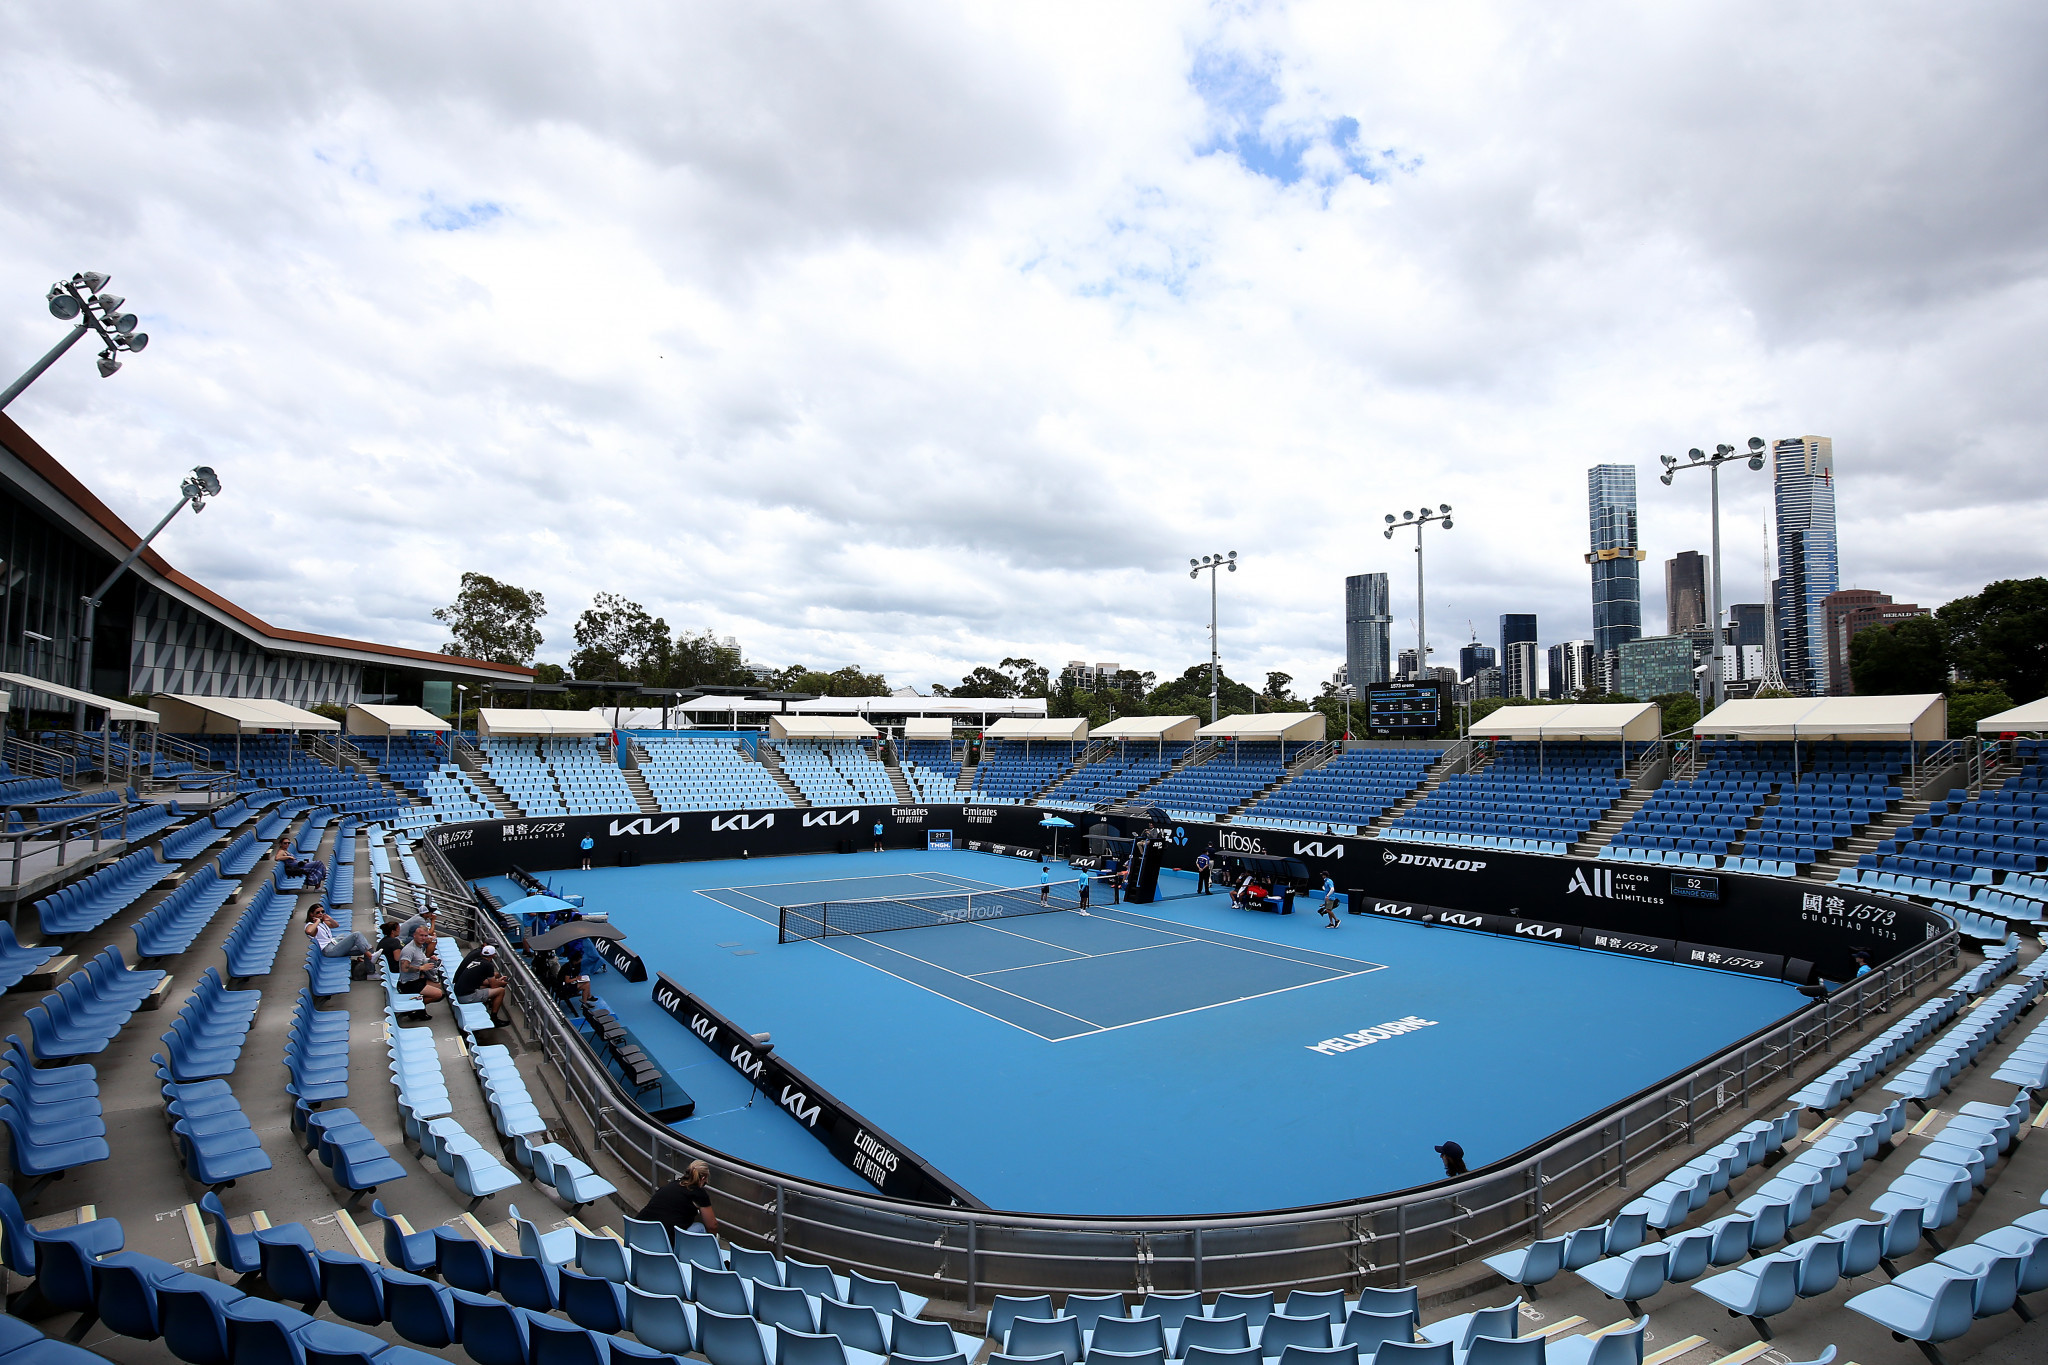 Players return negative COVID-19 tests as Australian Open draw revealed